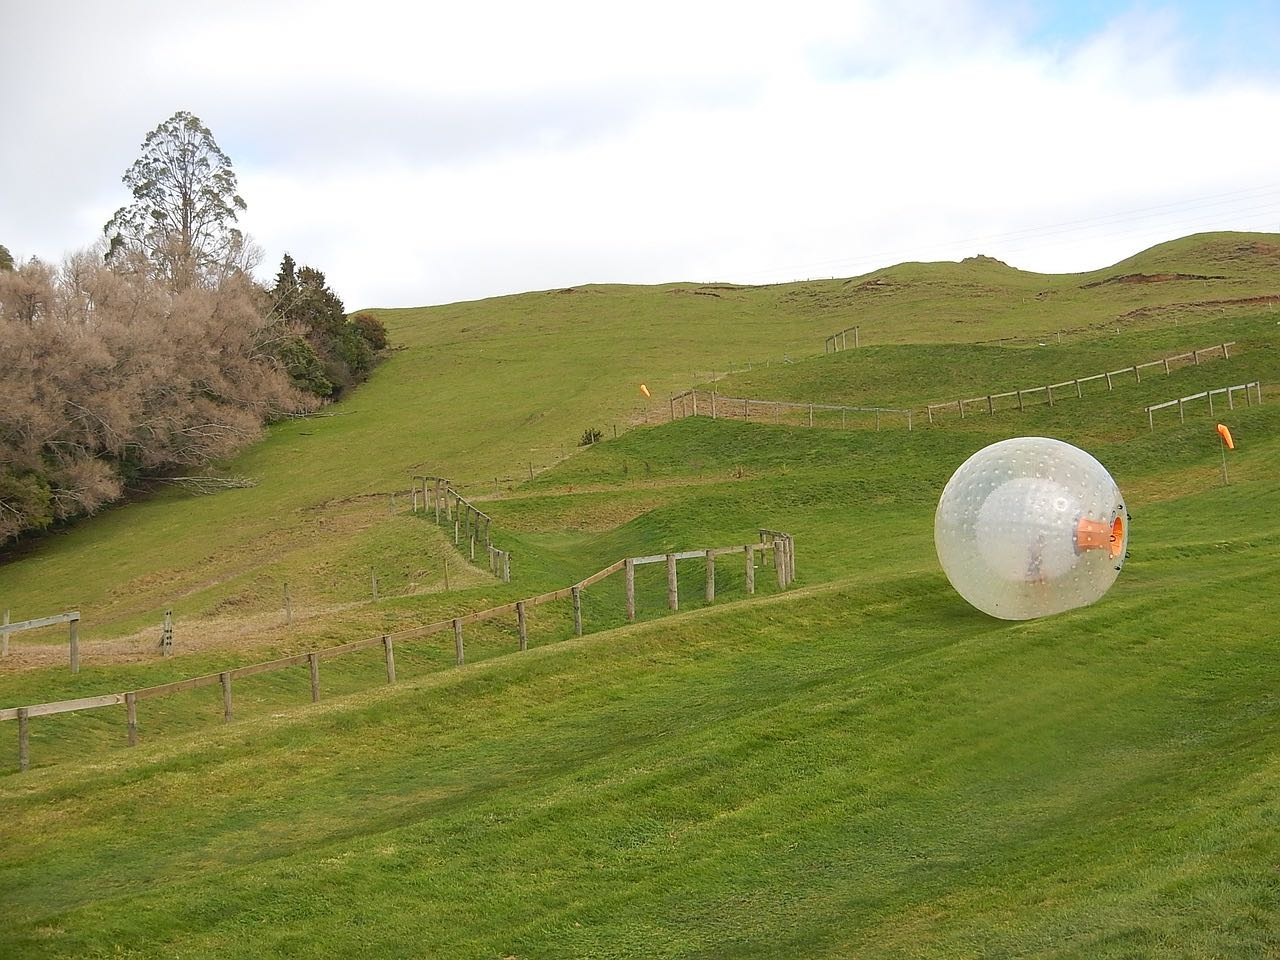 zorb_zorbing_on a hill_PD